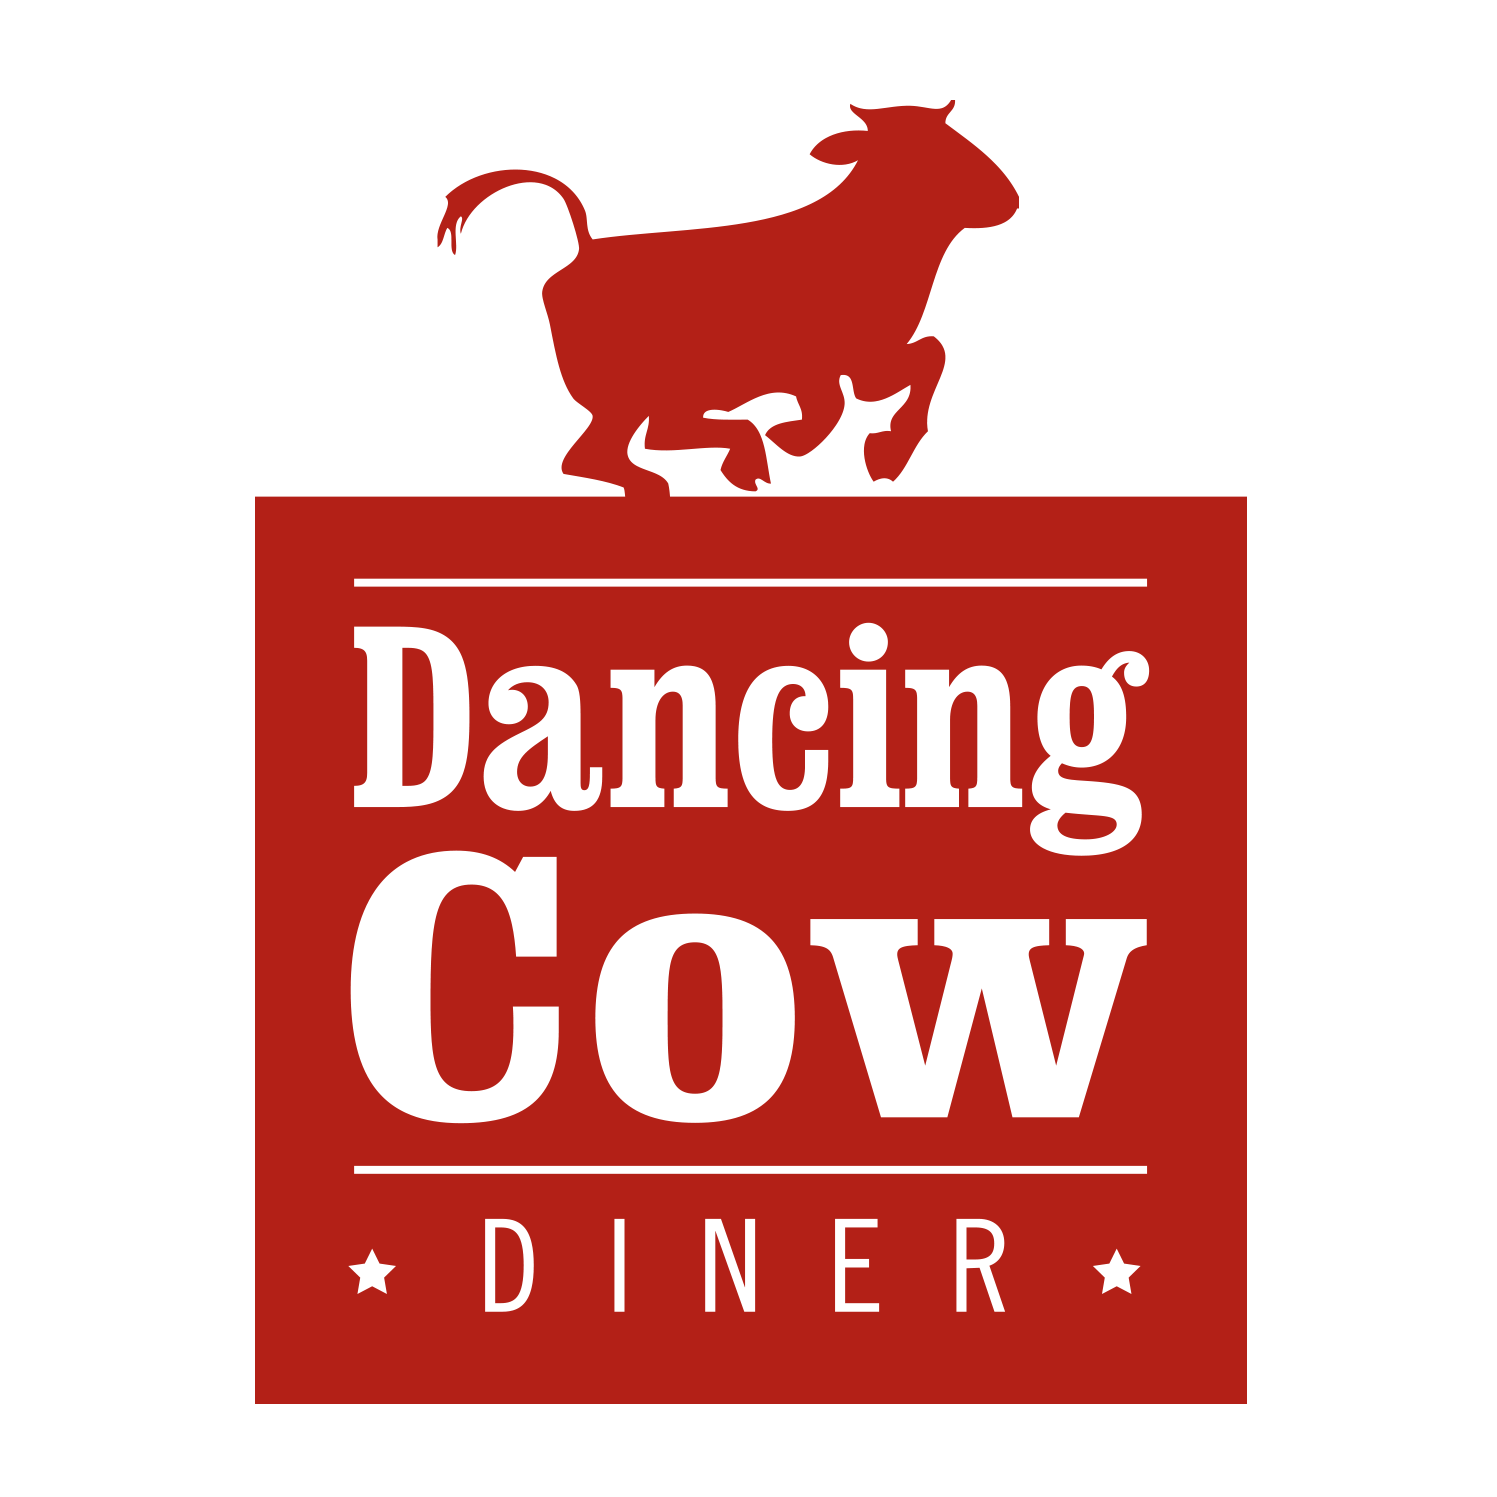 Dancing Cow Diner Logo Design